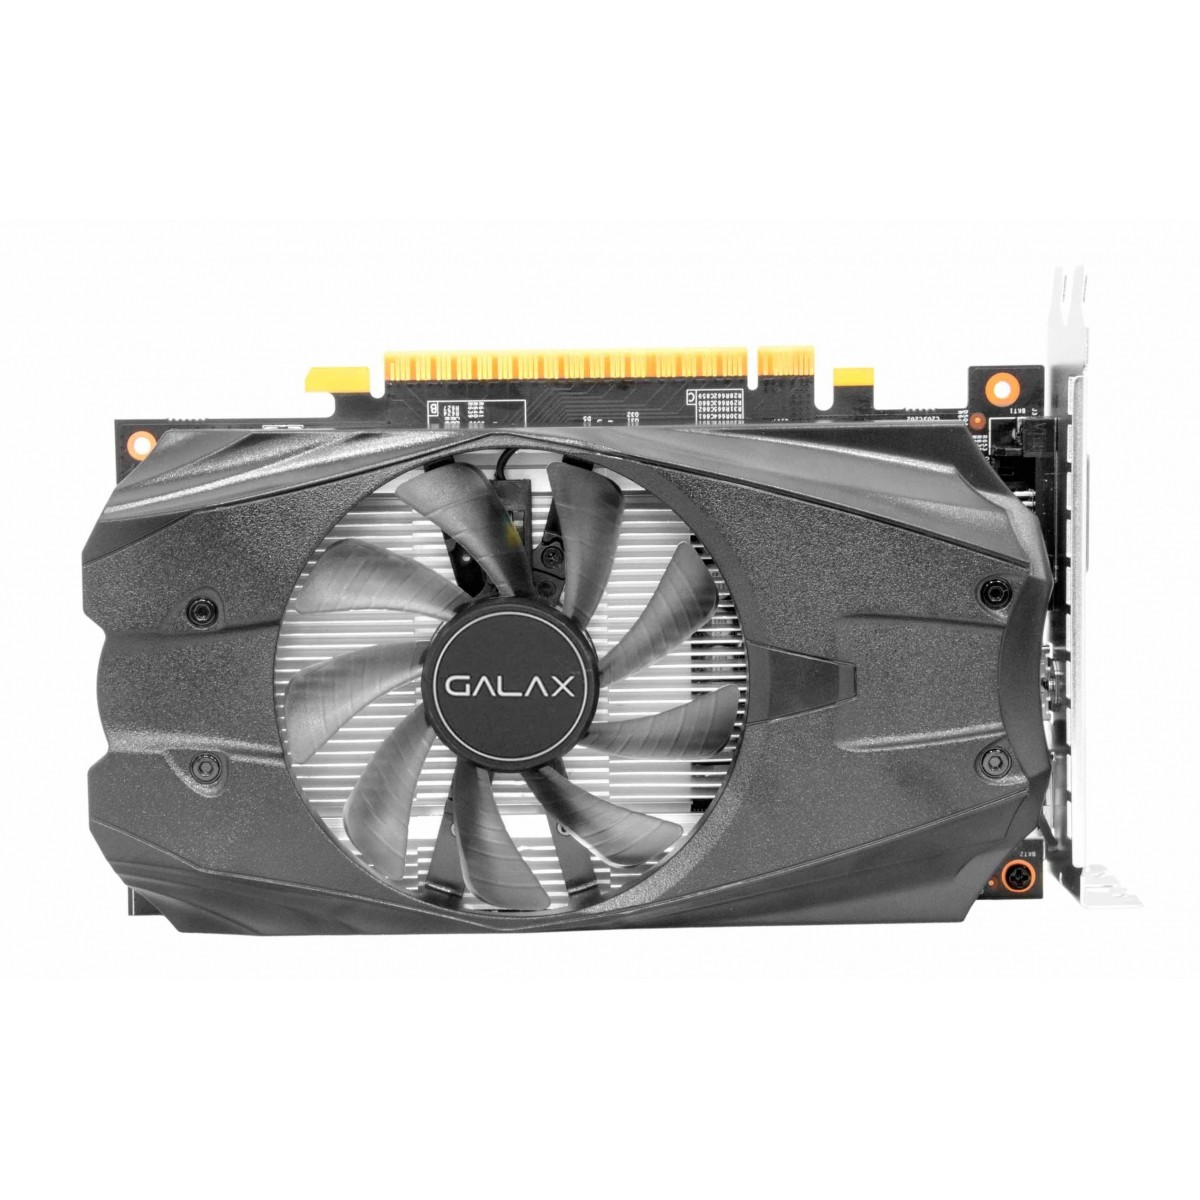 Vga Pci-E 4Gb Ddr5 Galax Geforce Gtx 1050Ti Oc 128Bit Dvi-D|Dp|Hdmi